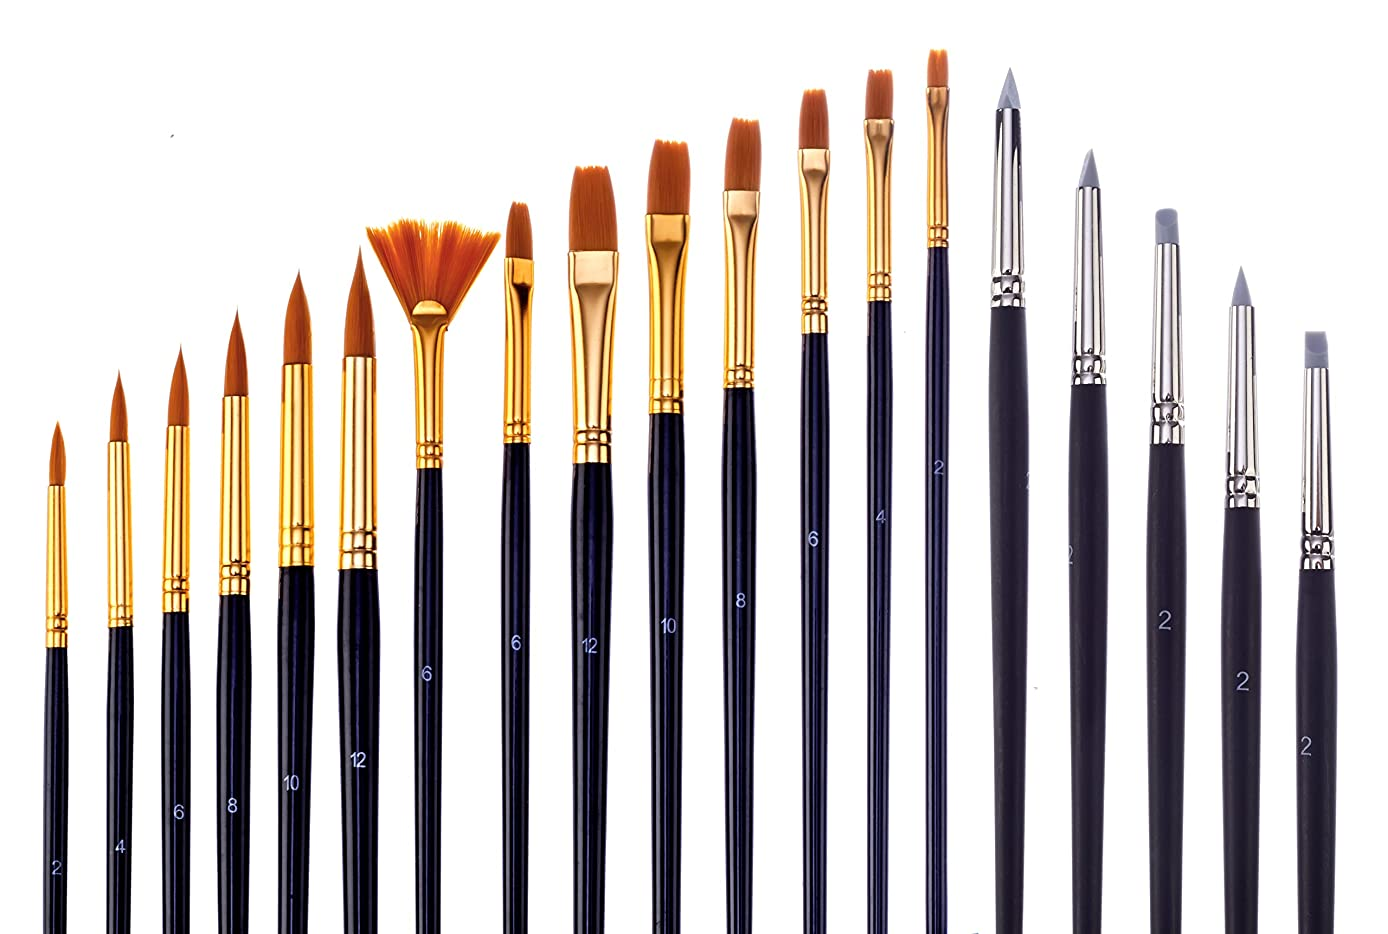 Jerry Q Art 19 Pcs Brush And Color Shaper Set. 14 Golden Nylon Round, Flat, Fan, Filbert Brushes And 5 Silicon Color Shapers. Multimedia Set JQ219